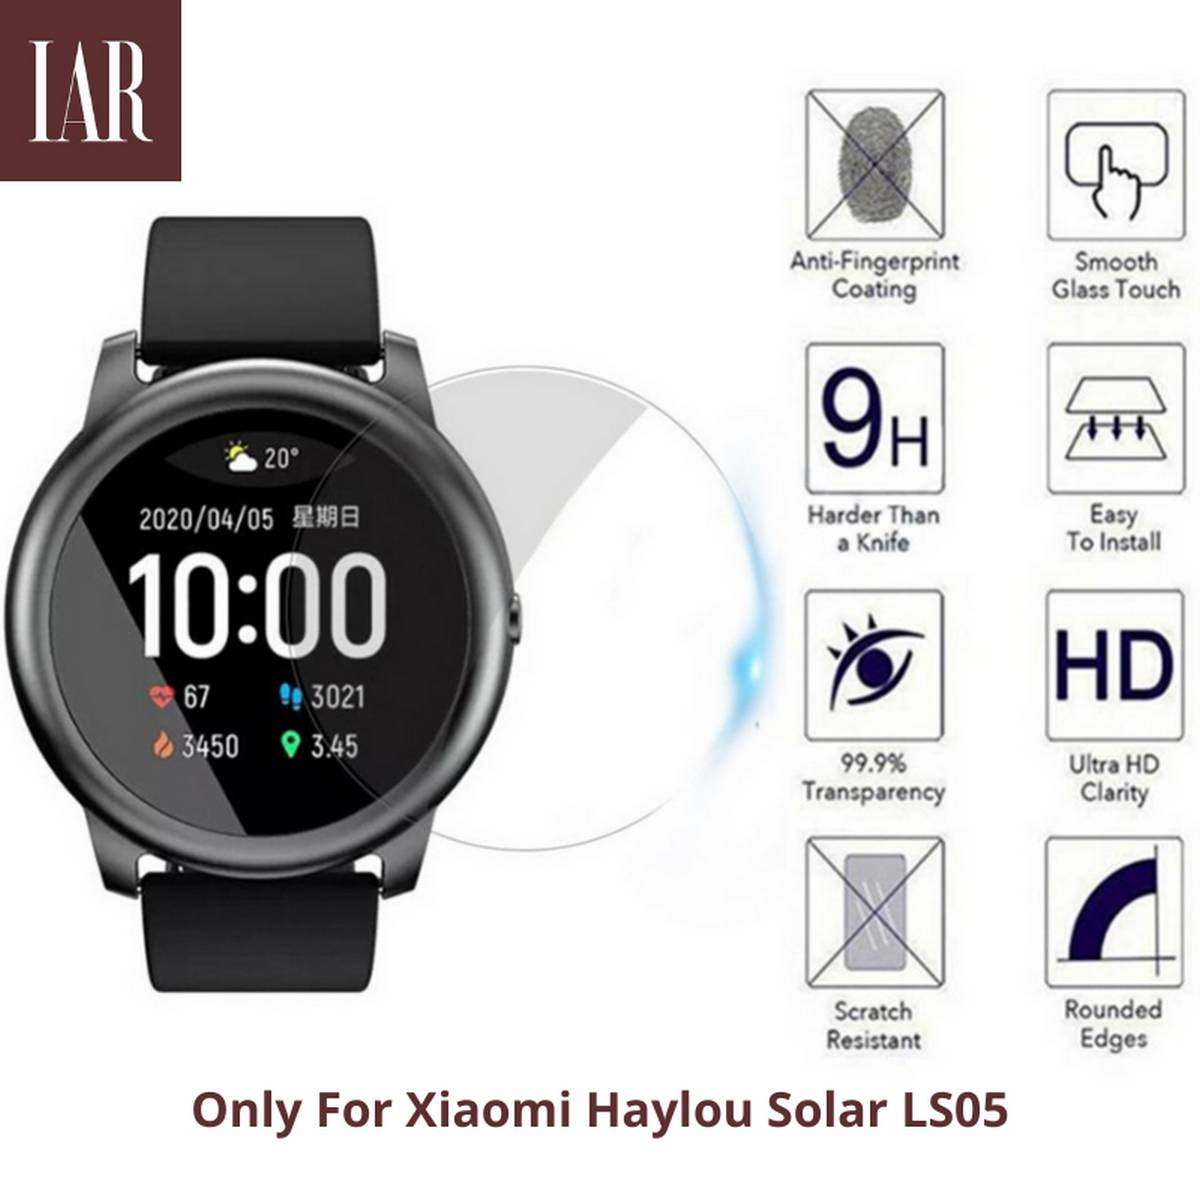 Pack Of Two, Full Screen Protector, Tempered Glass For Haylou Solar LS05 Watch 36mm By IAR Collections